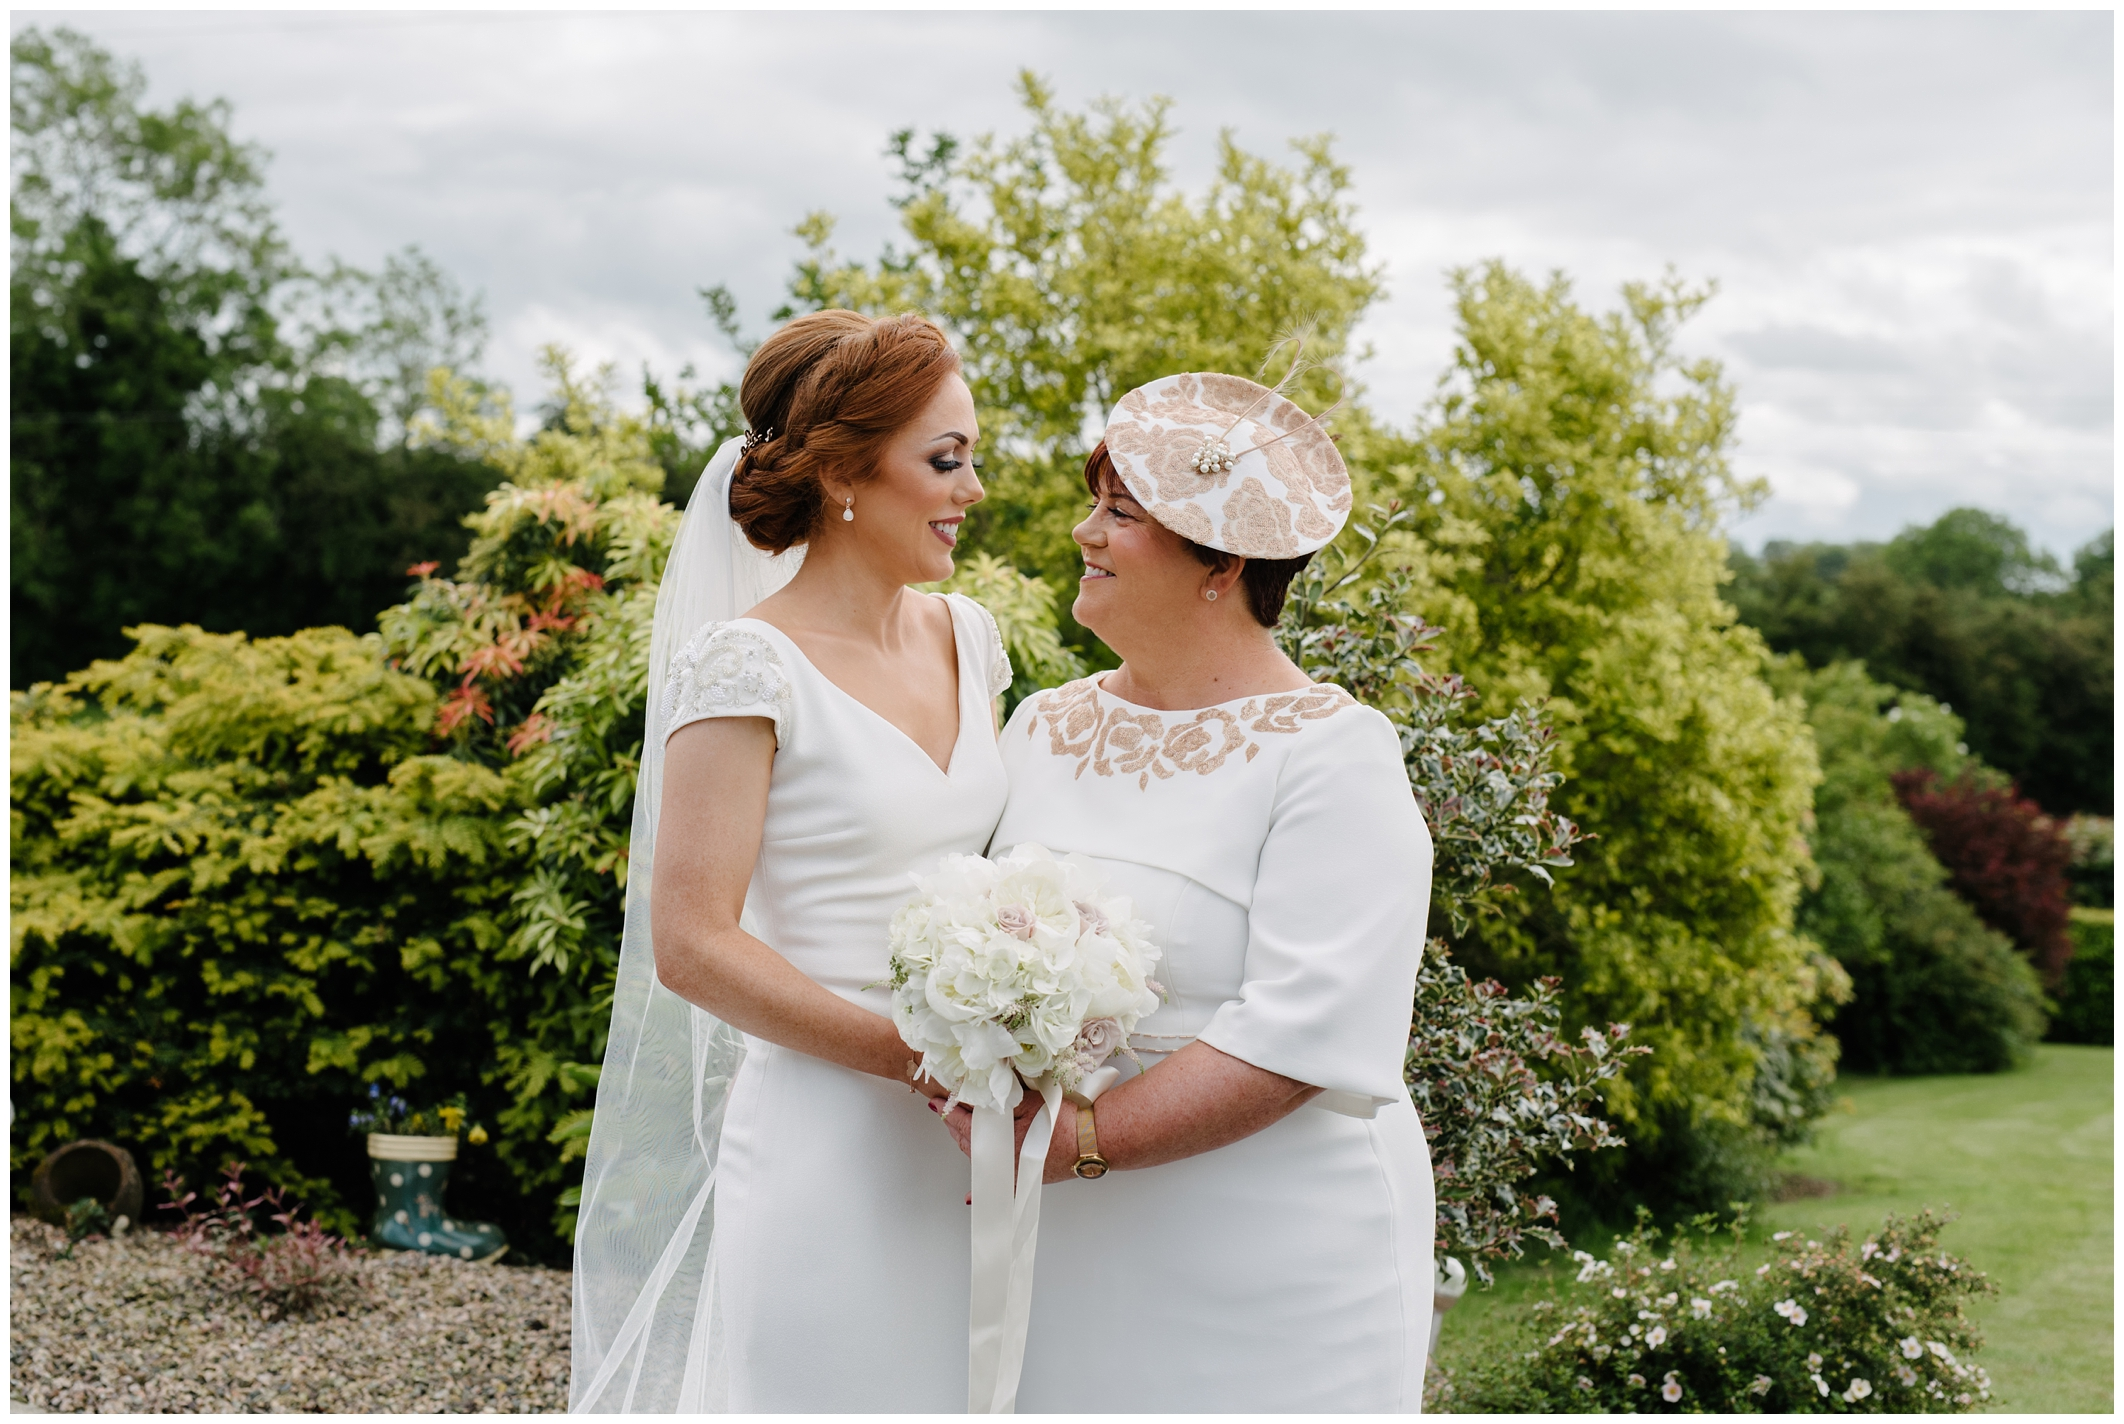 sinead_emmet_farnham_estate_wedding_jude_browne_photography_0043.jpg